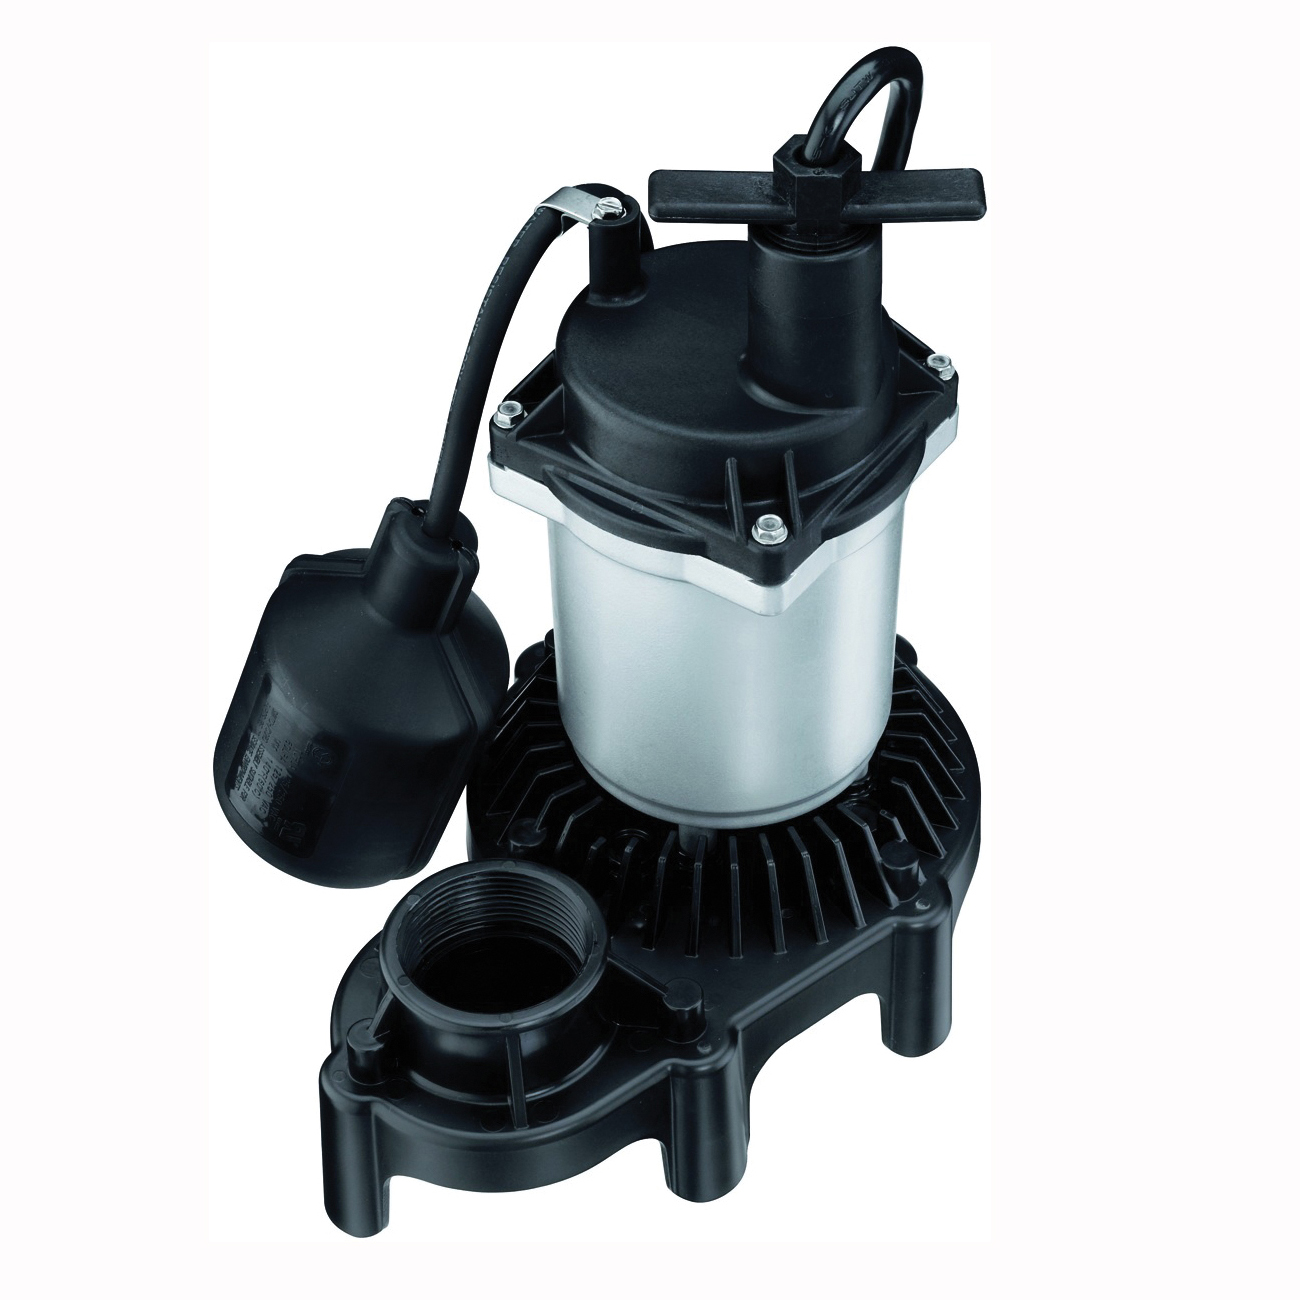 Picture of Sta-Rite Simer 2165 Sump Pump, 1-Phase, 4.1 A, 115 V, 0.5 hp, 1-1/2 in Outlet, 22 ft Max Head, 960 gph